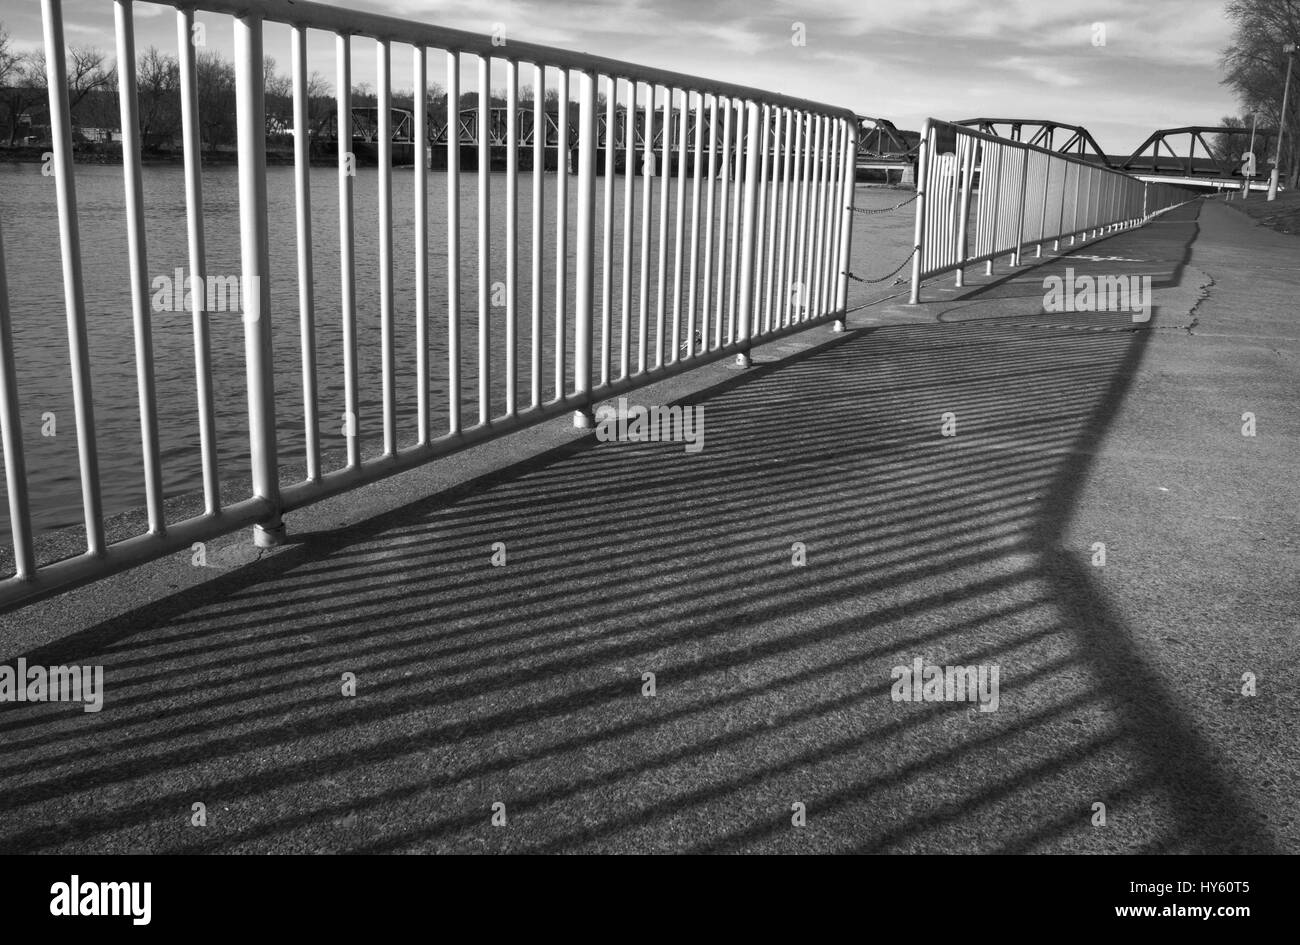 Repetition Railing Shadows - Stock Image